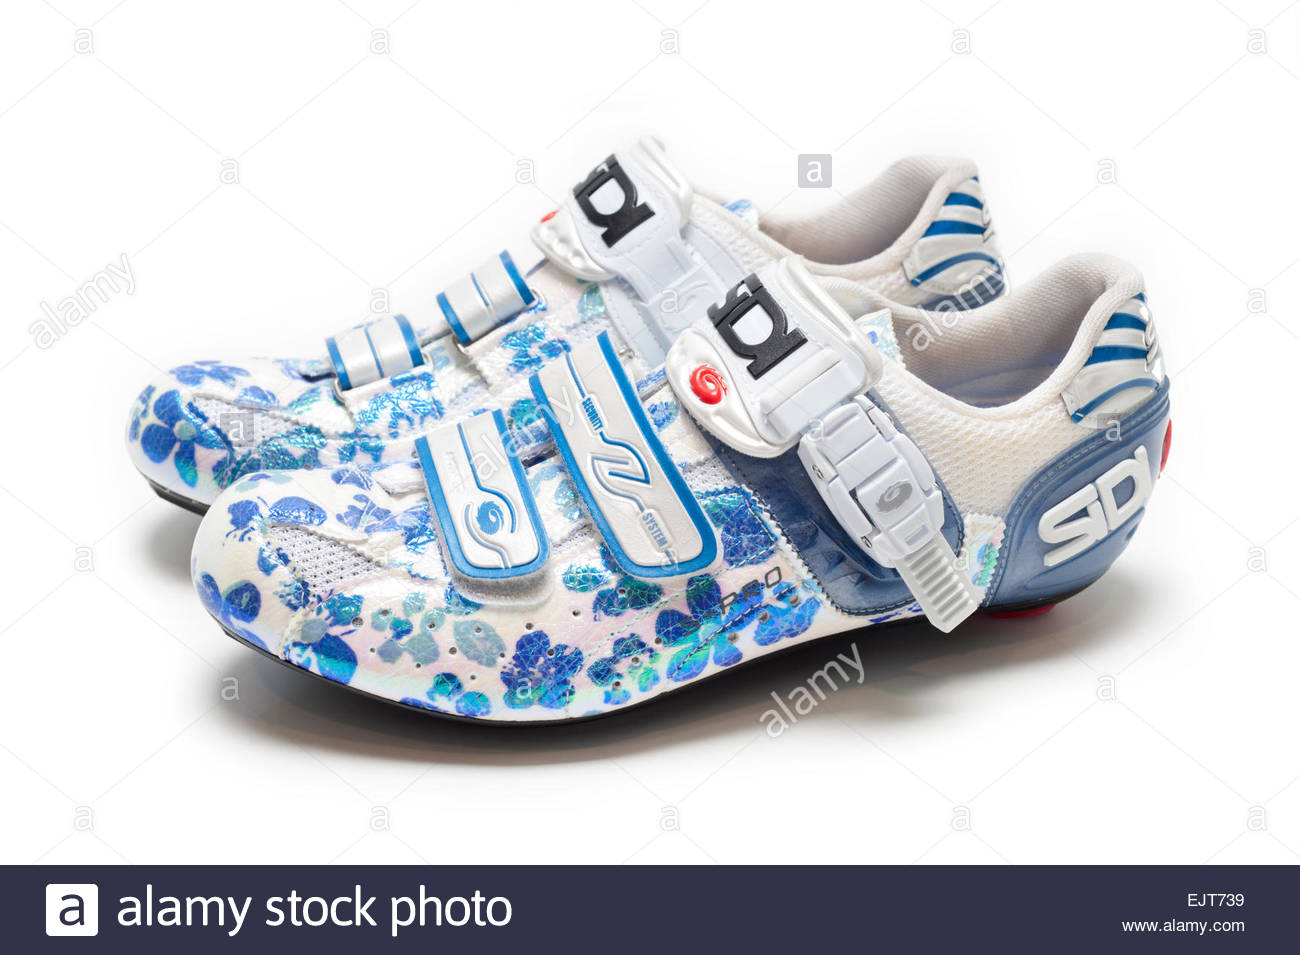 Women's Road Bike Shoes on White Background Flower Patterns, Sidi Genius Pro 5 Professional  Cycling Road Bike - Stock Image